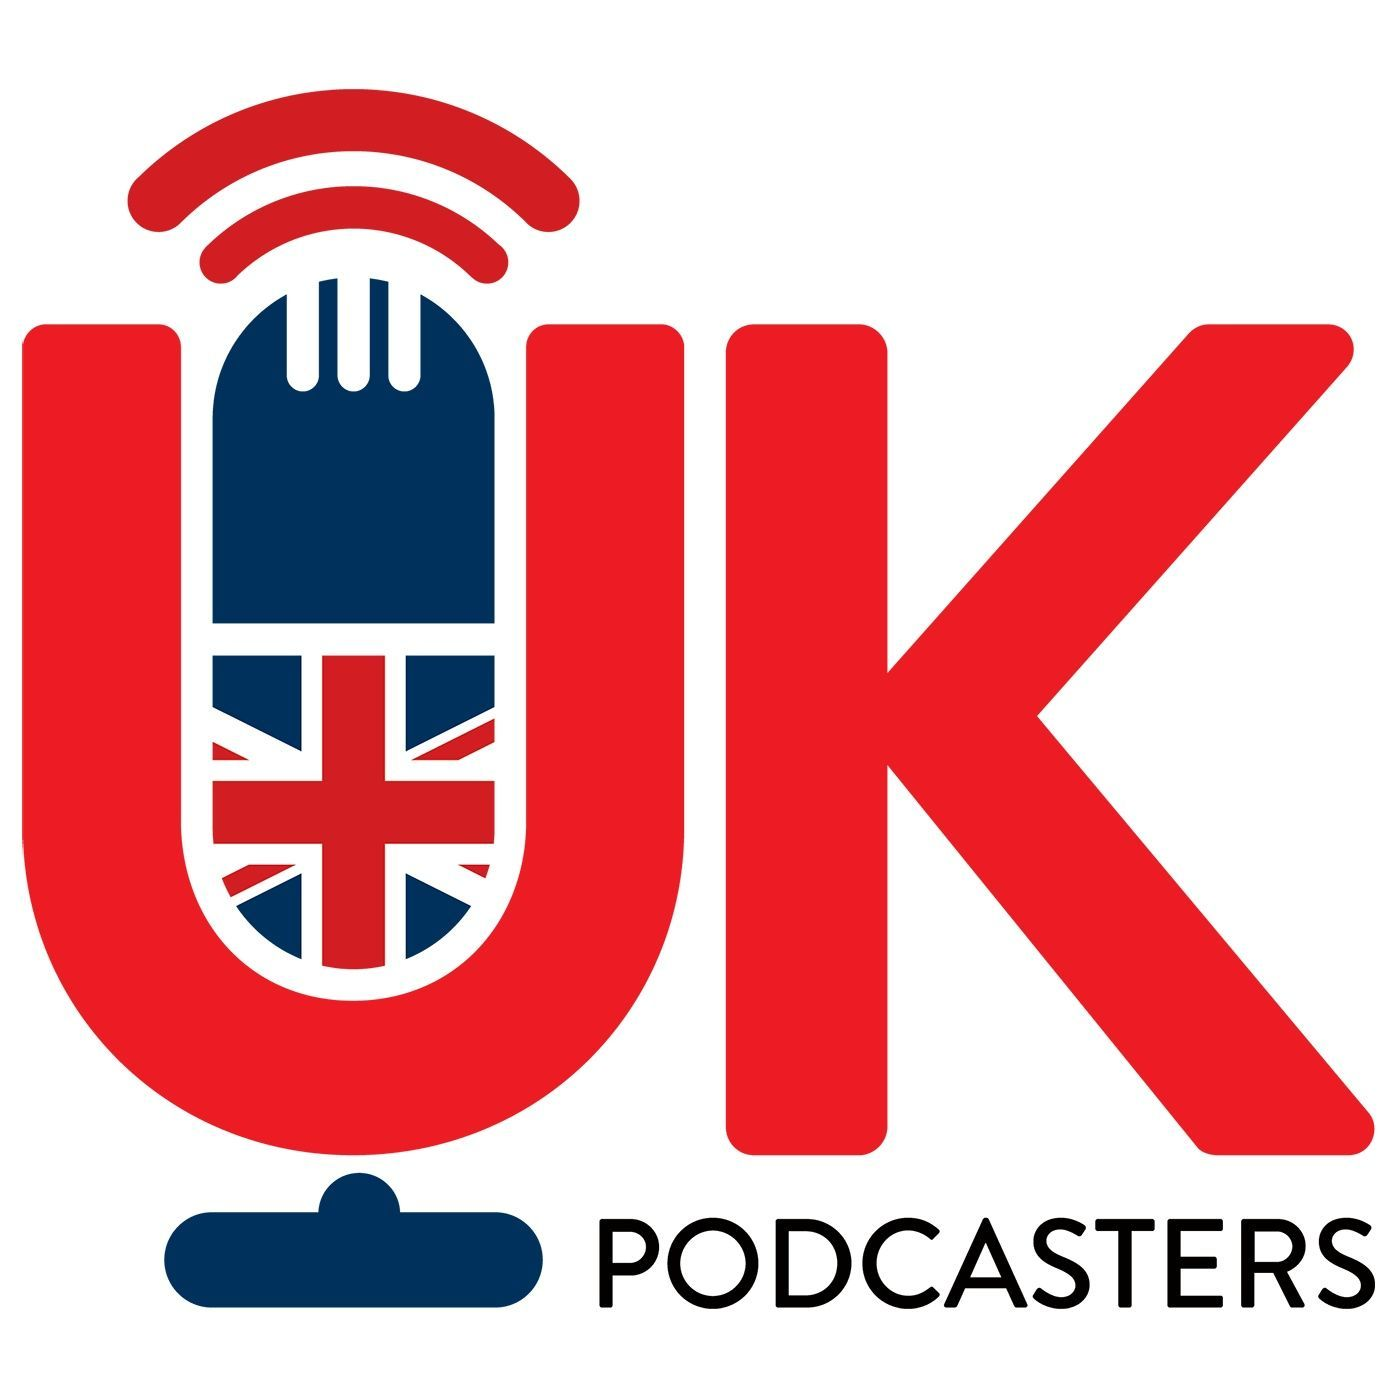 The Future of UK Podcasters